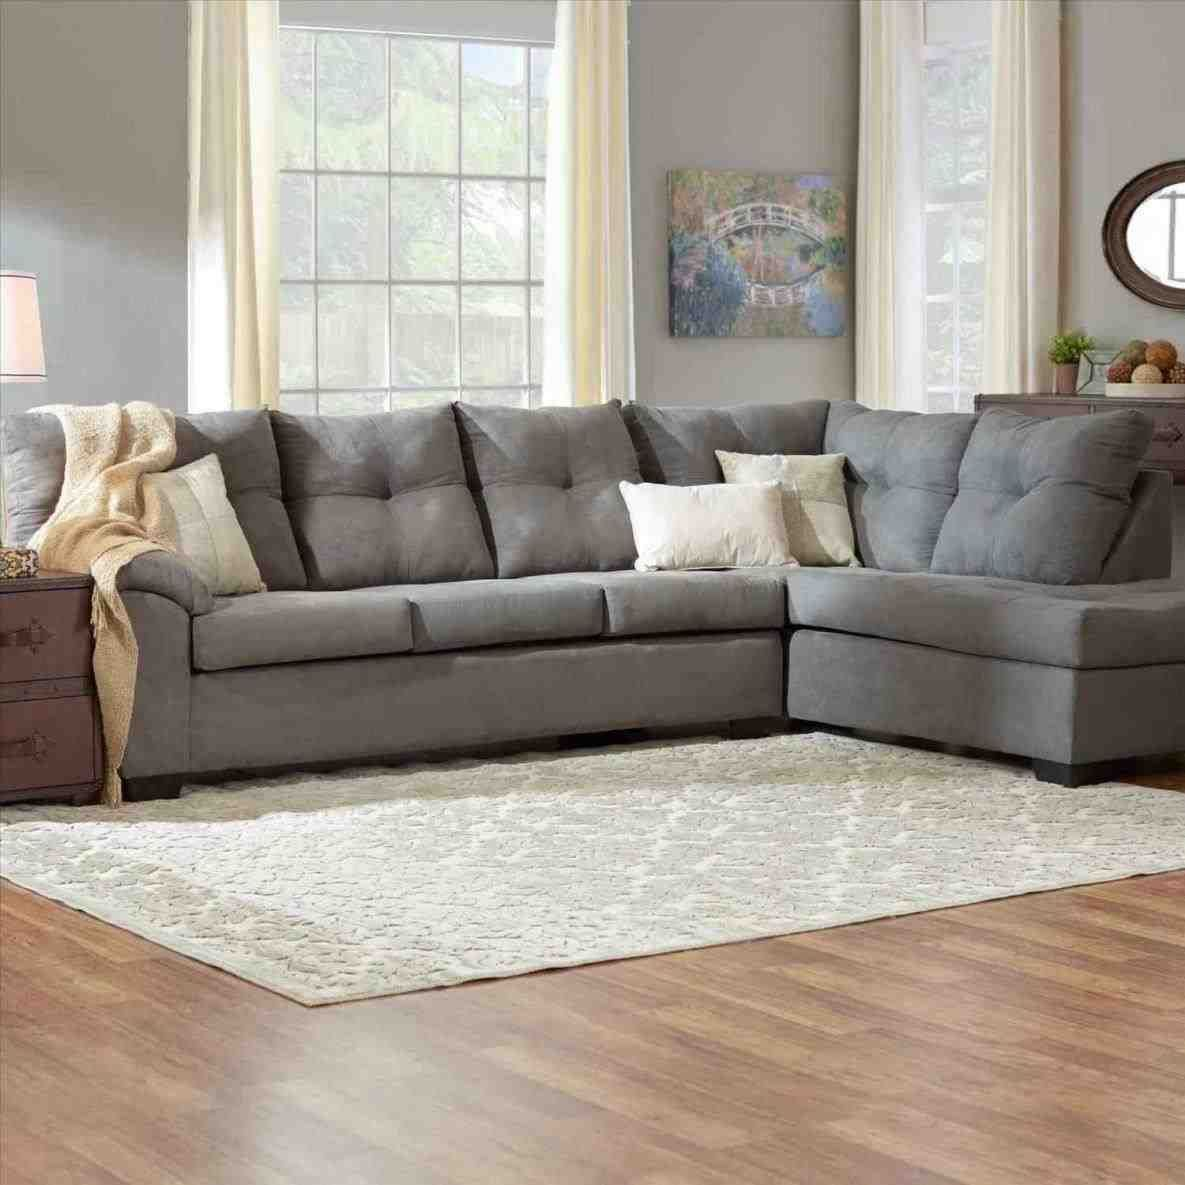 Cheap Loveseats Target With Images Sectional Sofa Sectional